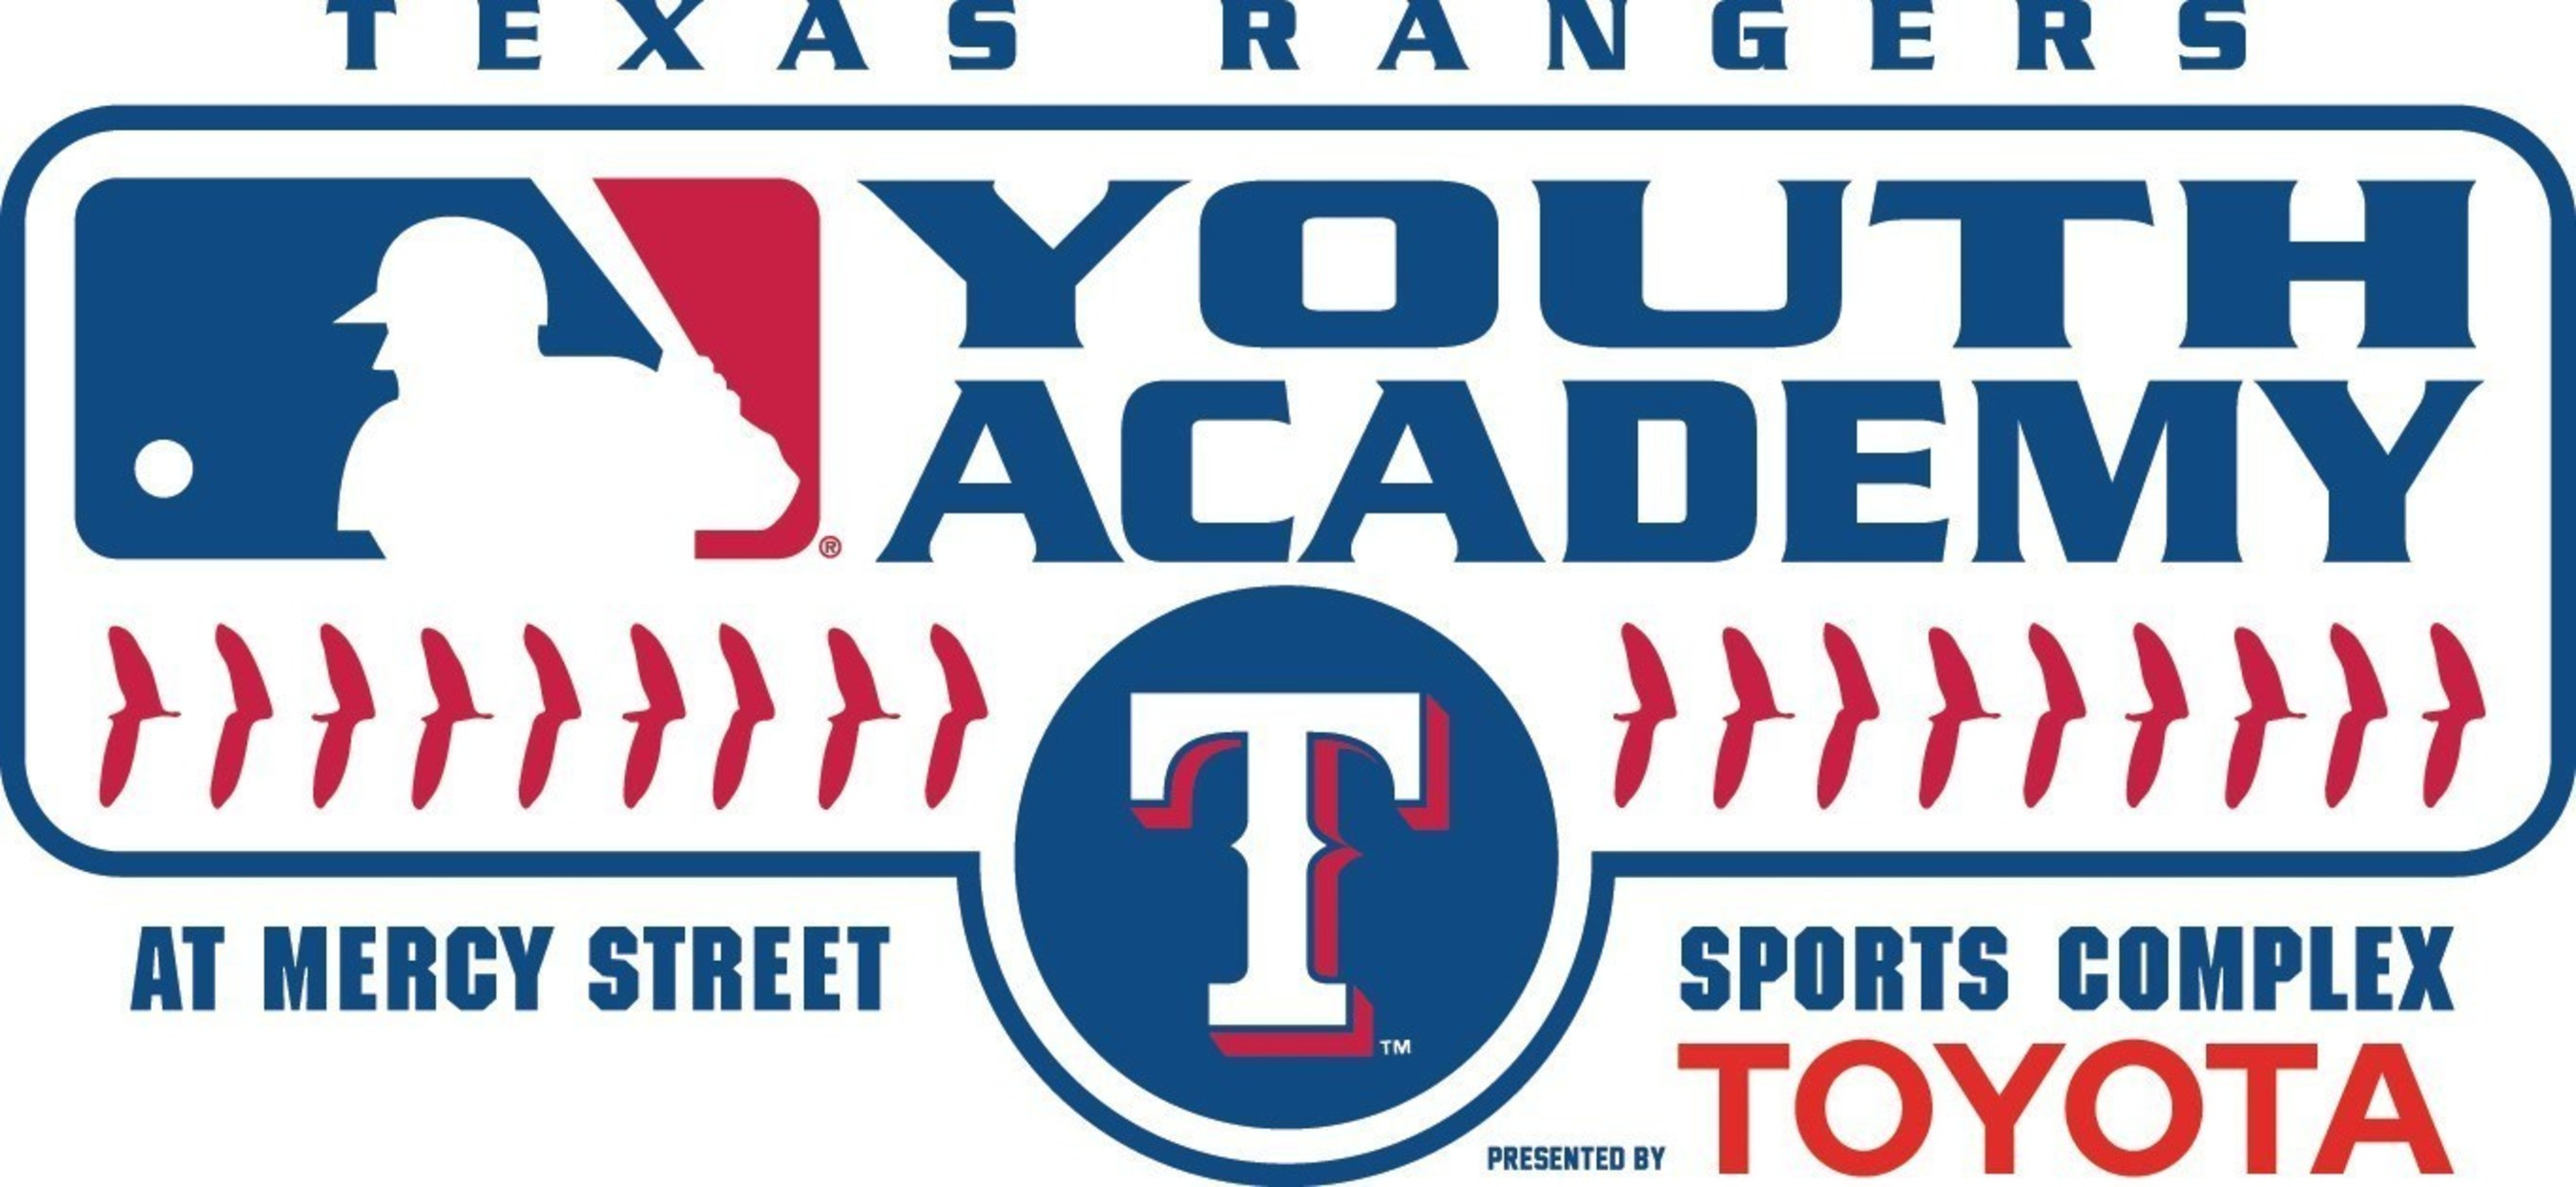 Toyota Texas Rangers MLB Youth Academy